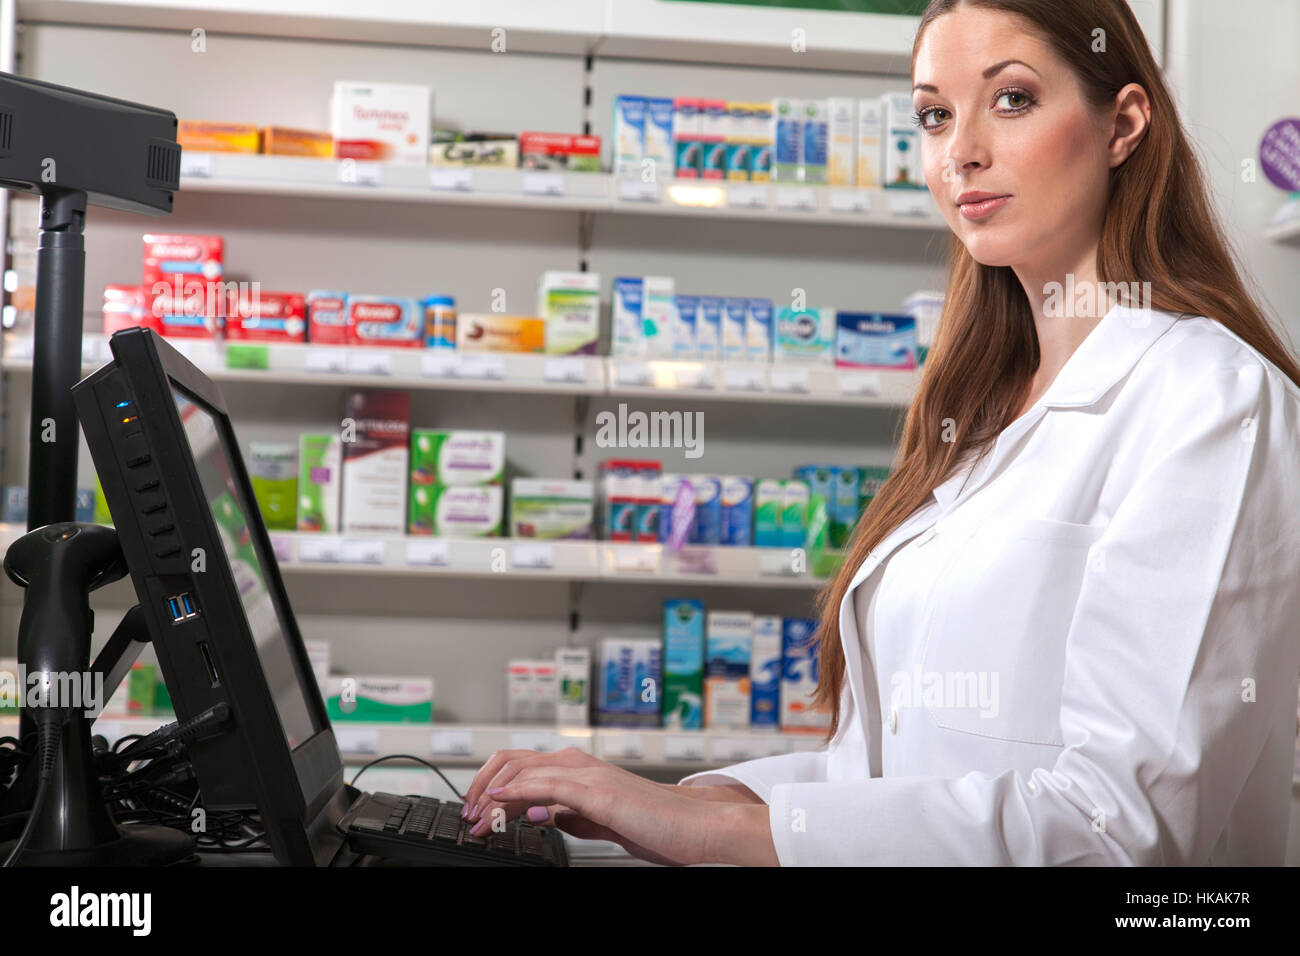 Female pharmacist searches medicine holding a prescription in her hand - Stock Image